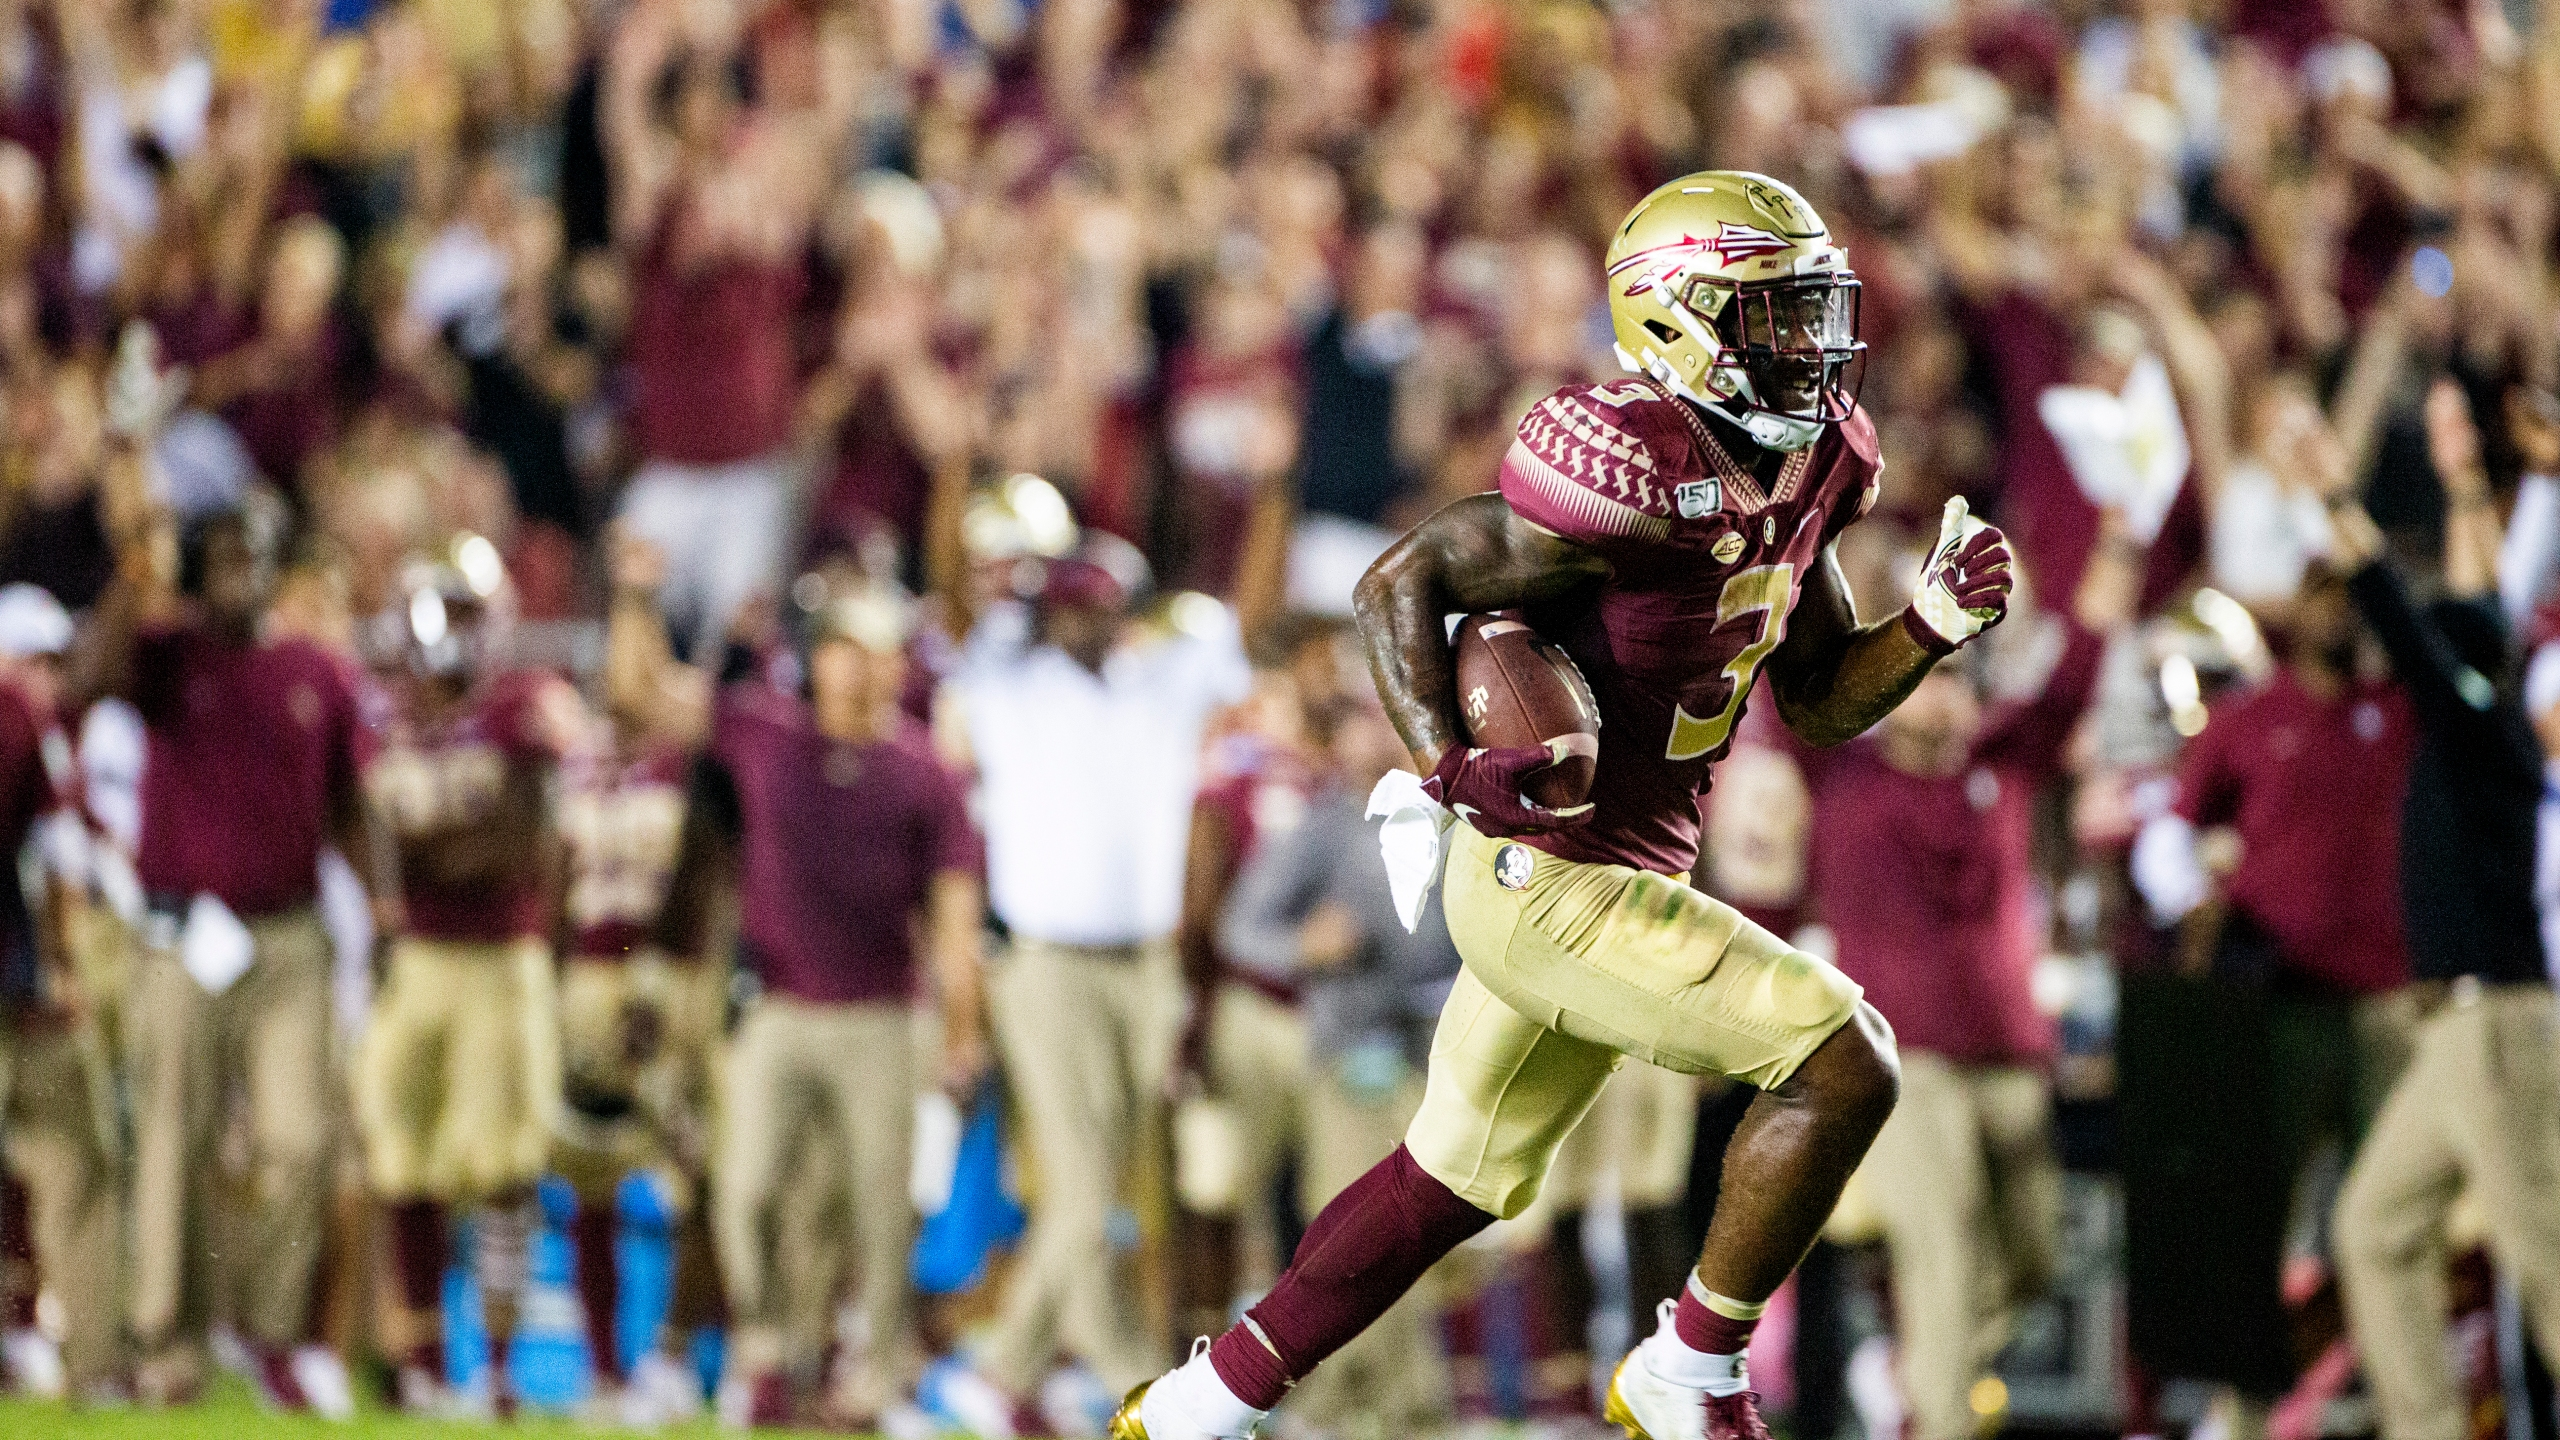 Fsu Running Back Cam Akers Drafted By Los Angeles Rams Mypanhandle Com Wmbb Tv